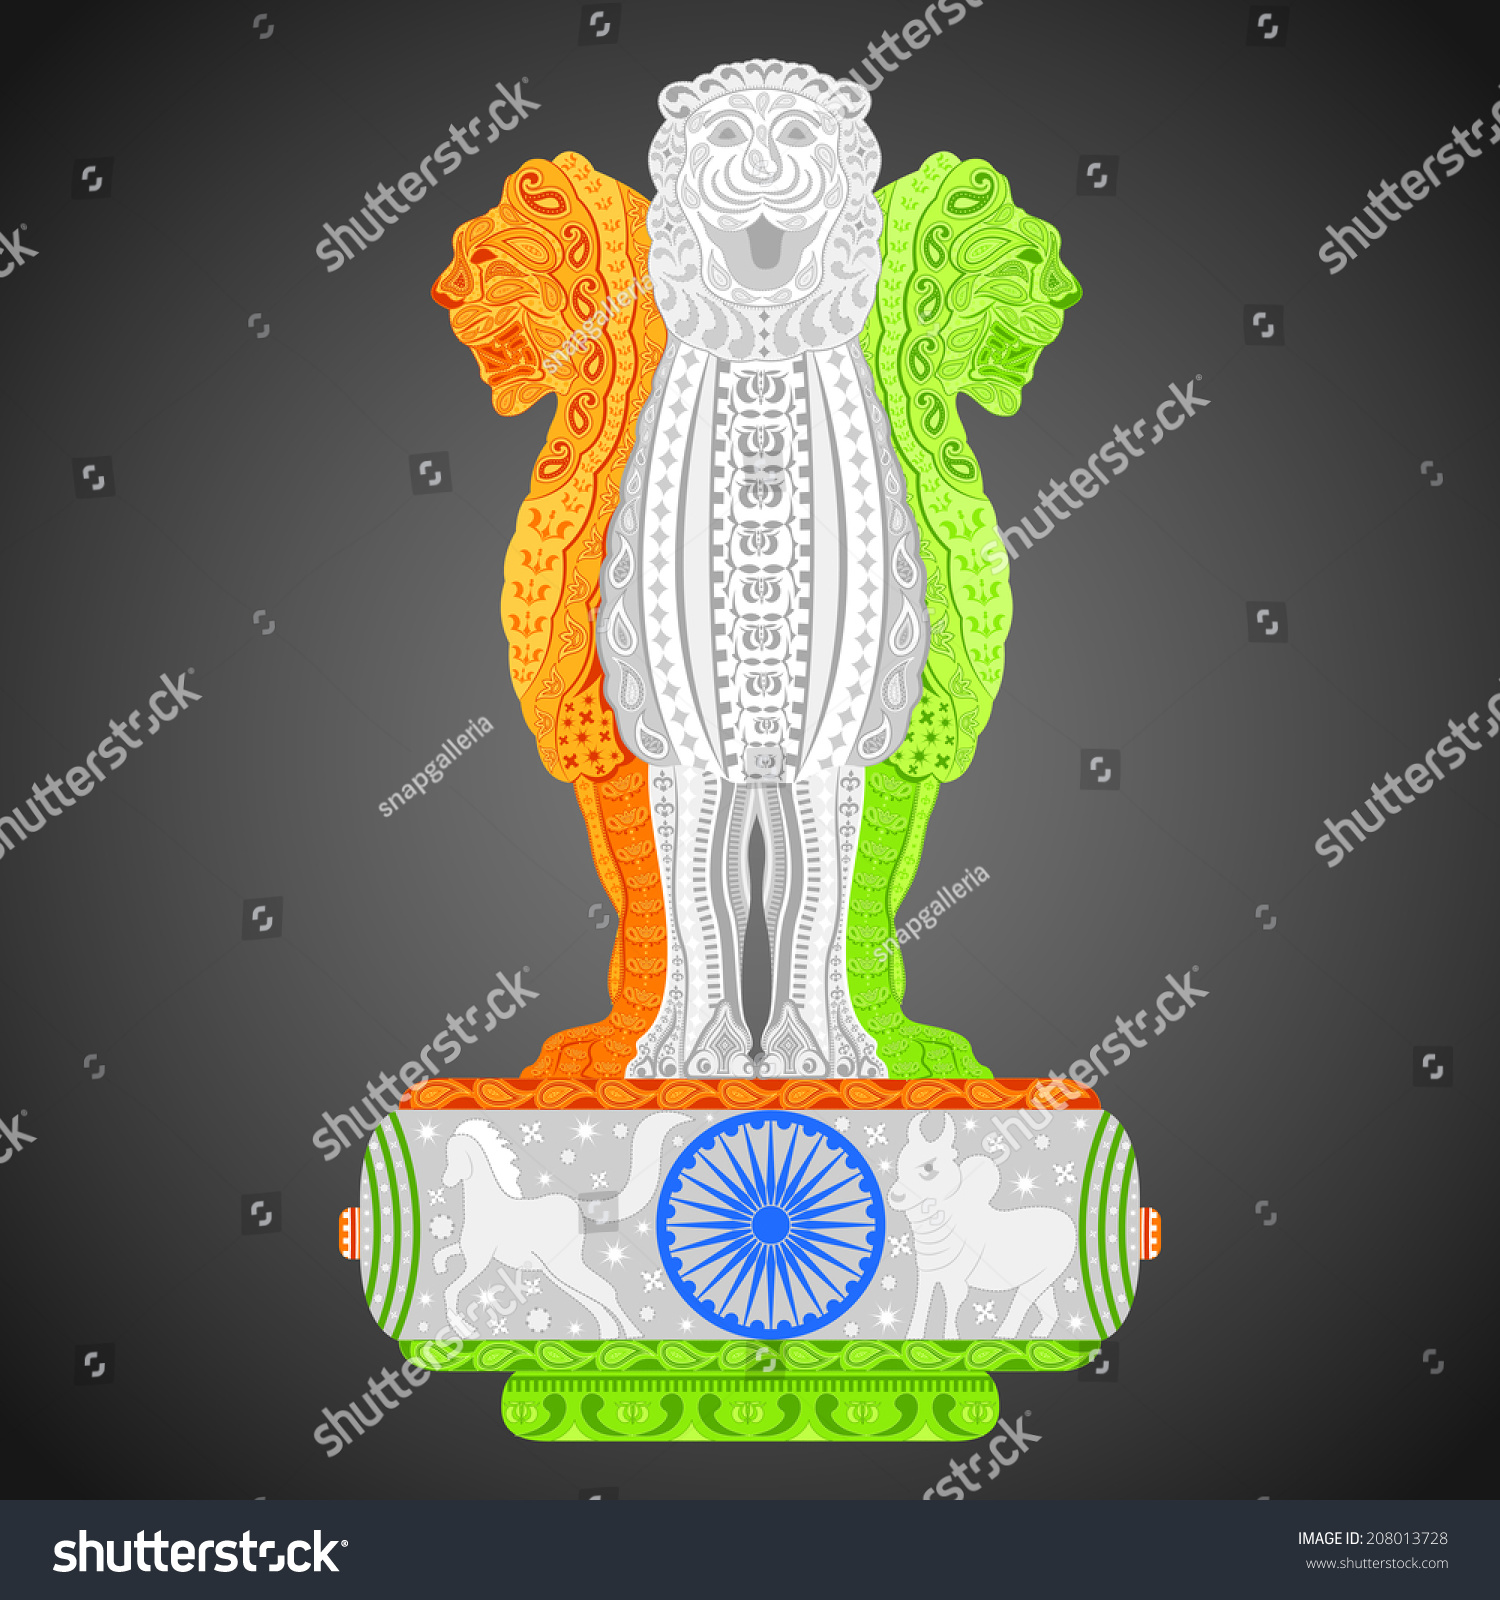 Colors website ashoka - Easy To Edit Vector Illustration Of Pillars Of Ashoka In Indian Flag Color